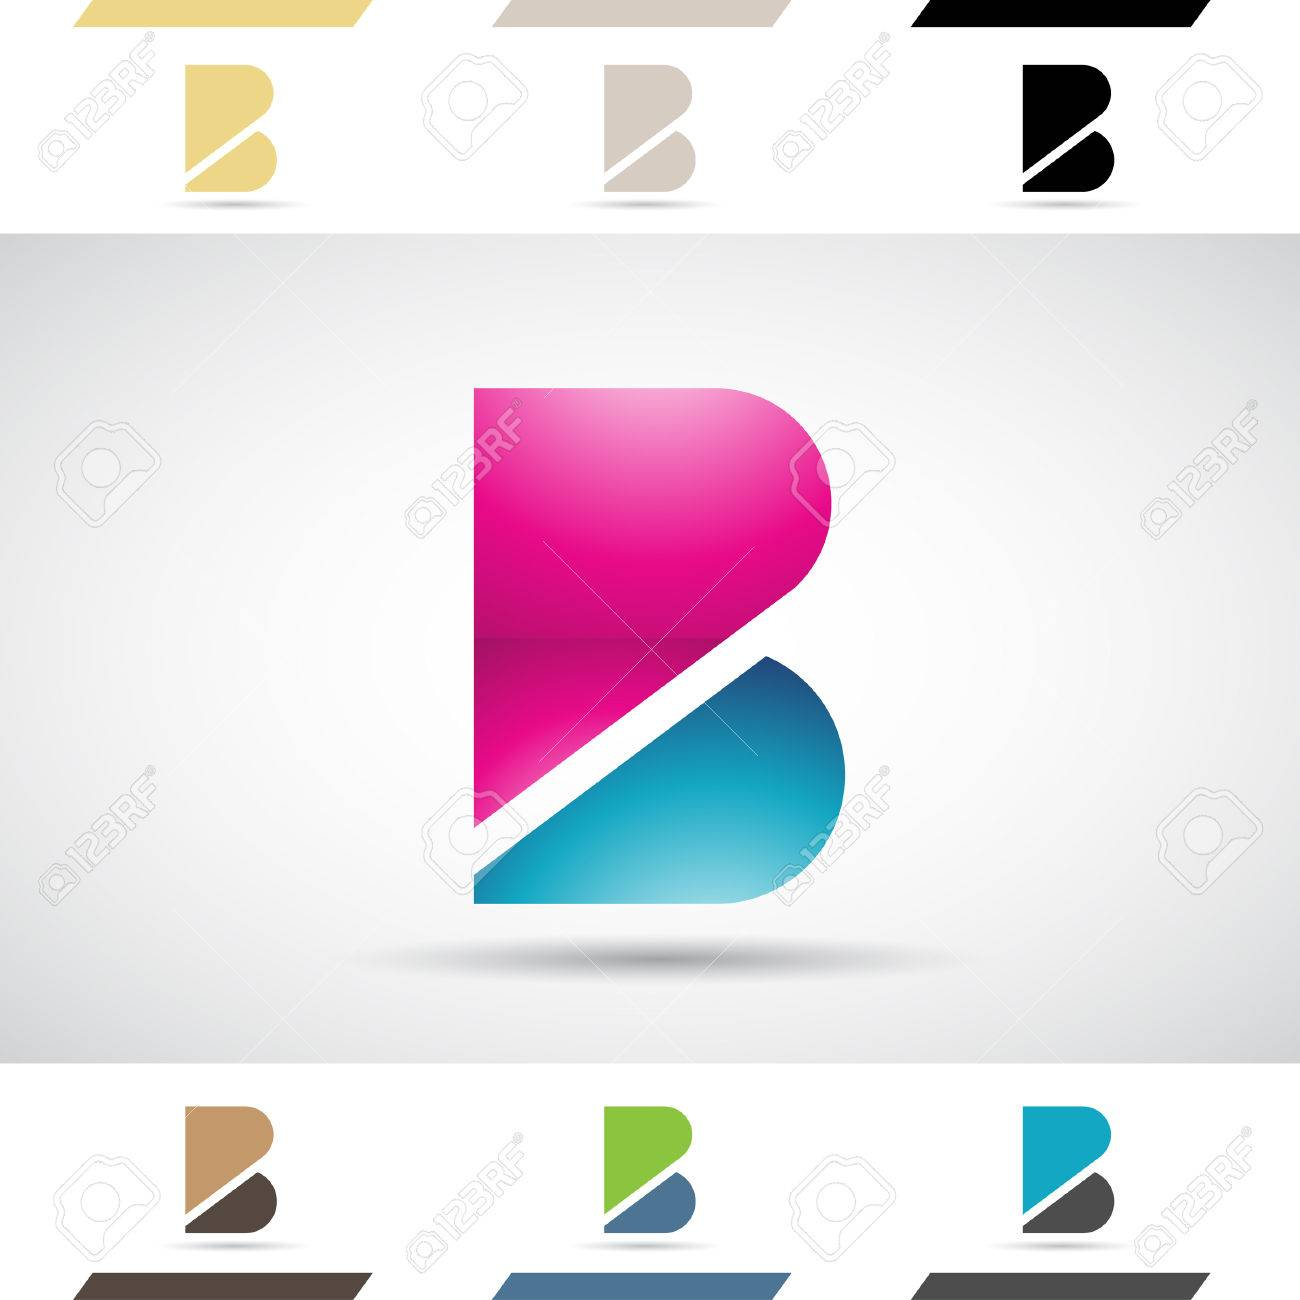 Design Concept Of Colorful Stock Icons And Shapes Of Letter ...